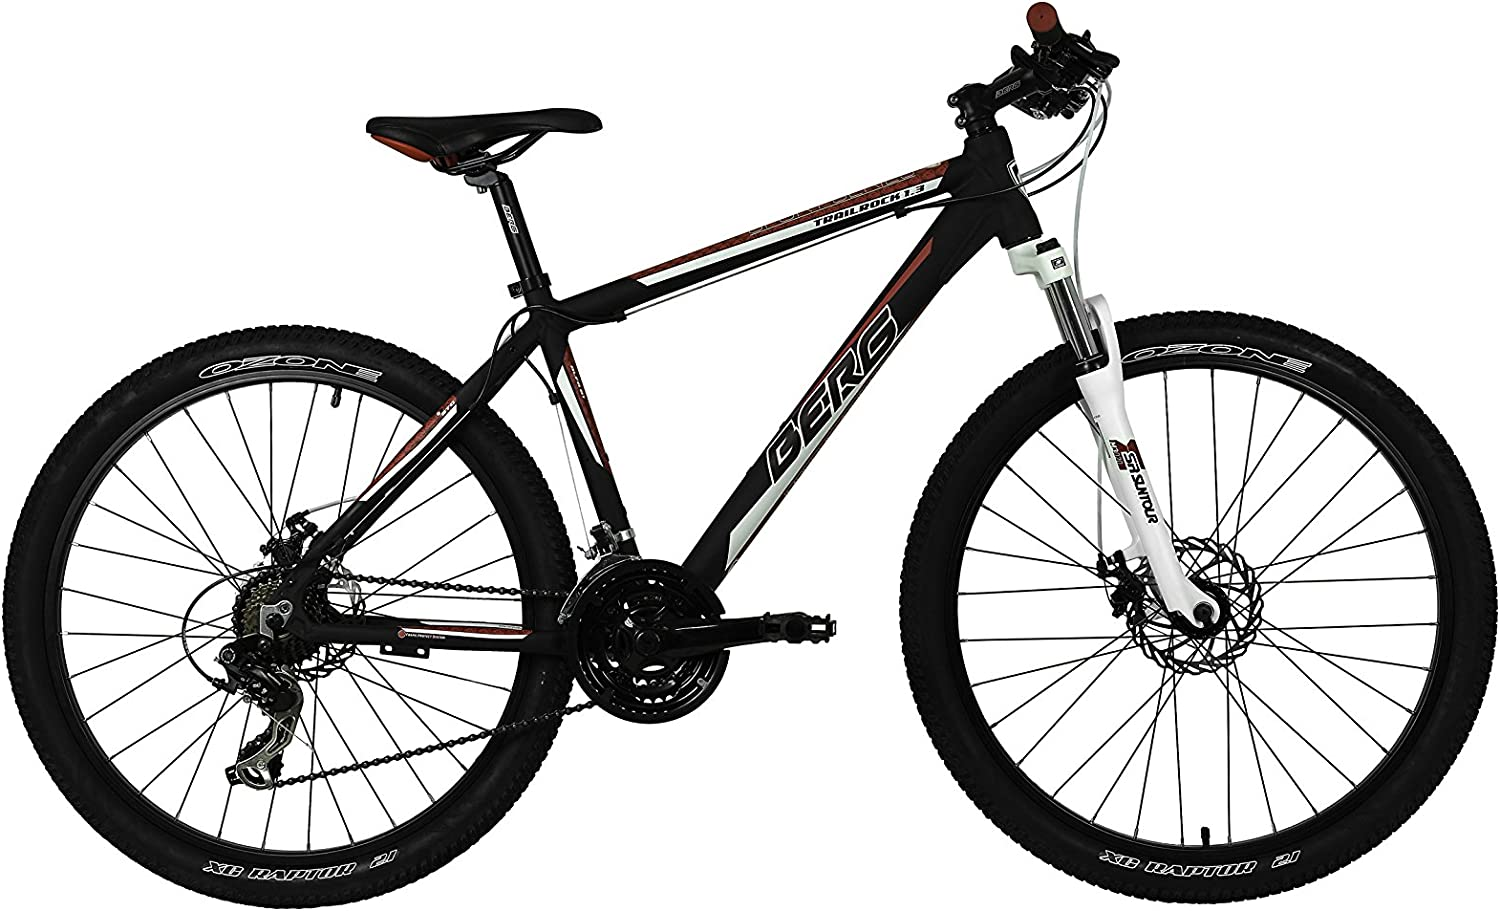 Berg Cycles Bicicleta Trailrock 1.3 Negro 21(XL): Amazon.es: Deportes y aire libre